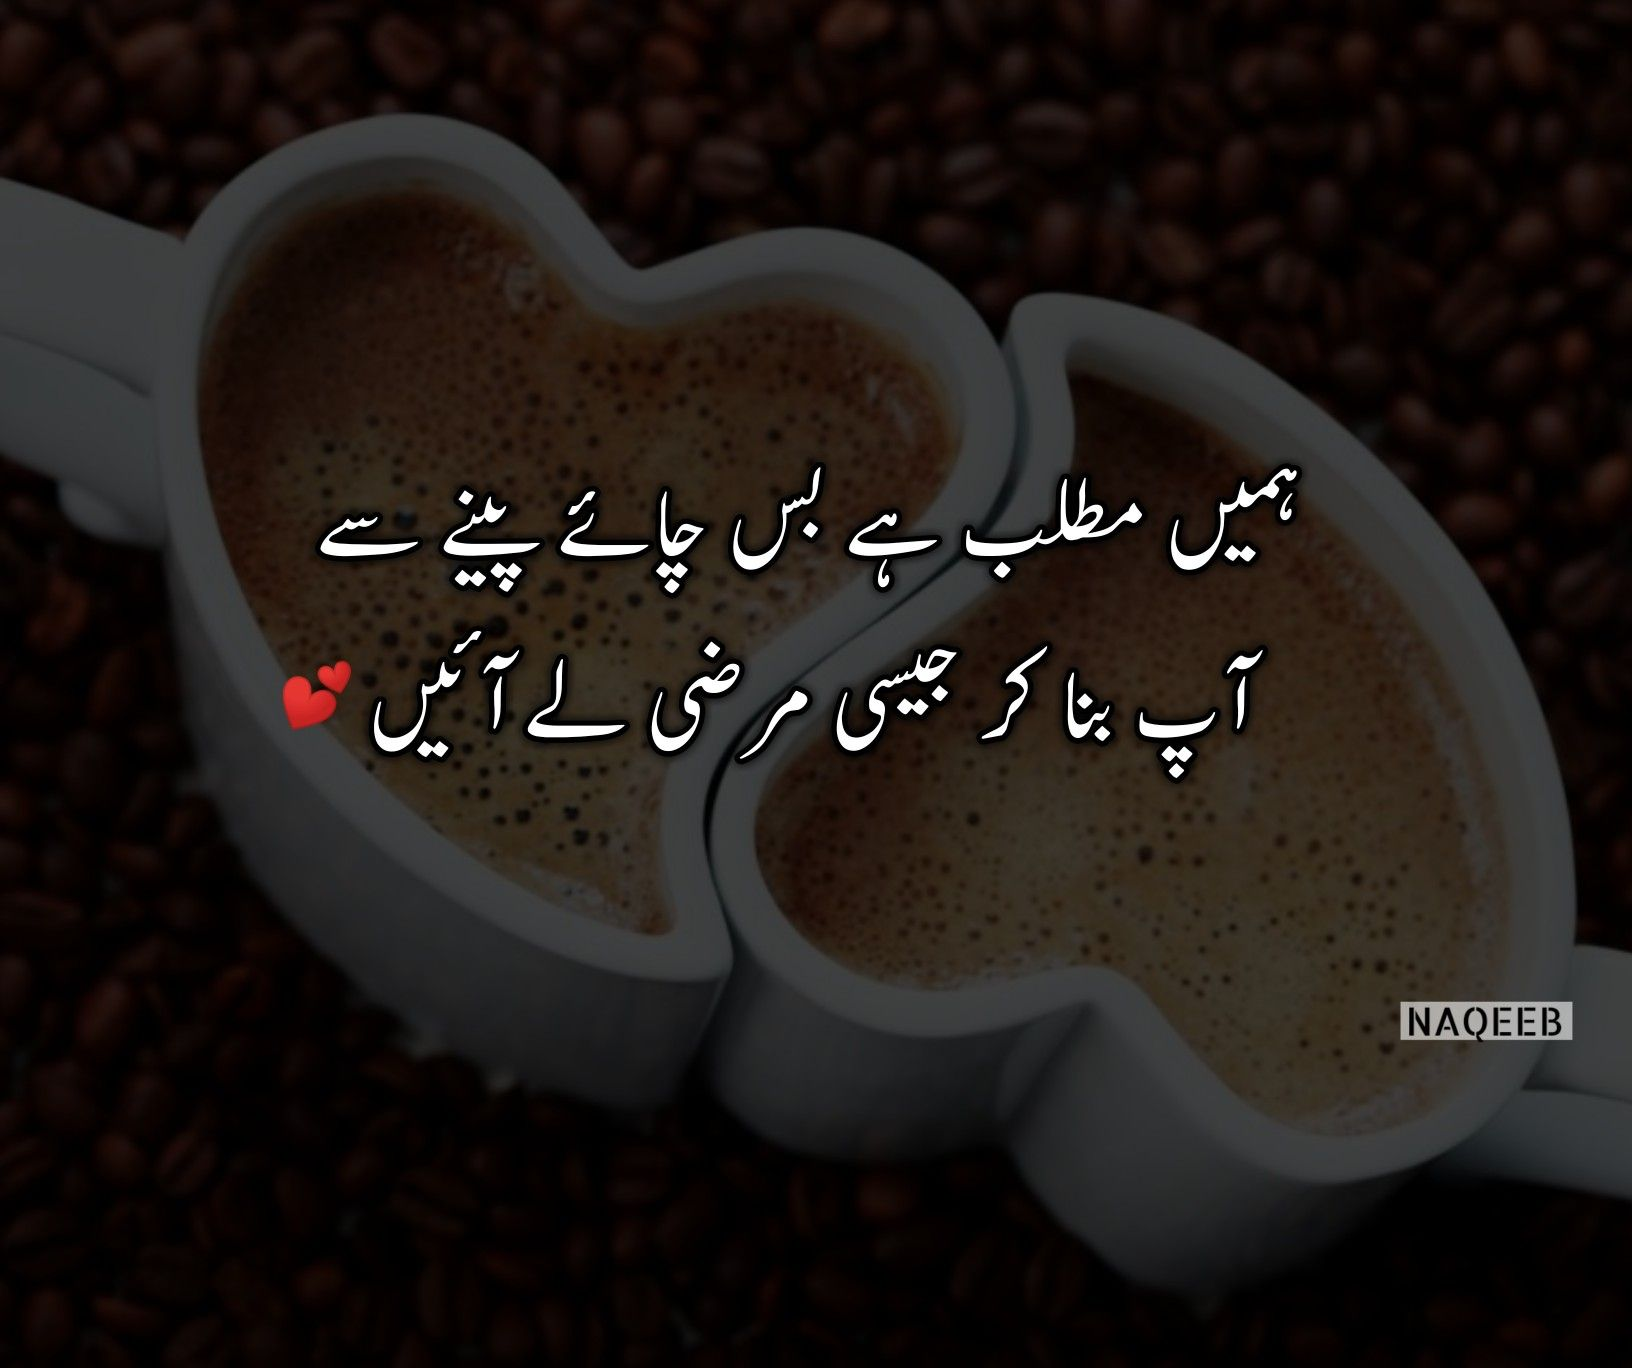 best urdu adab poetry and quotes page | Tea quotes funny